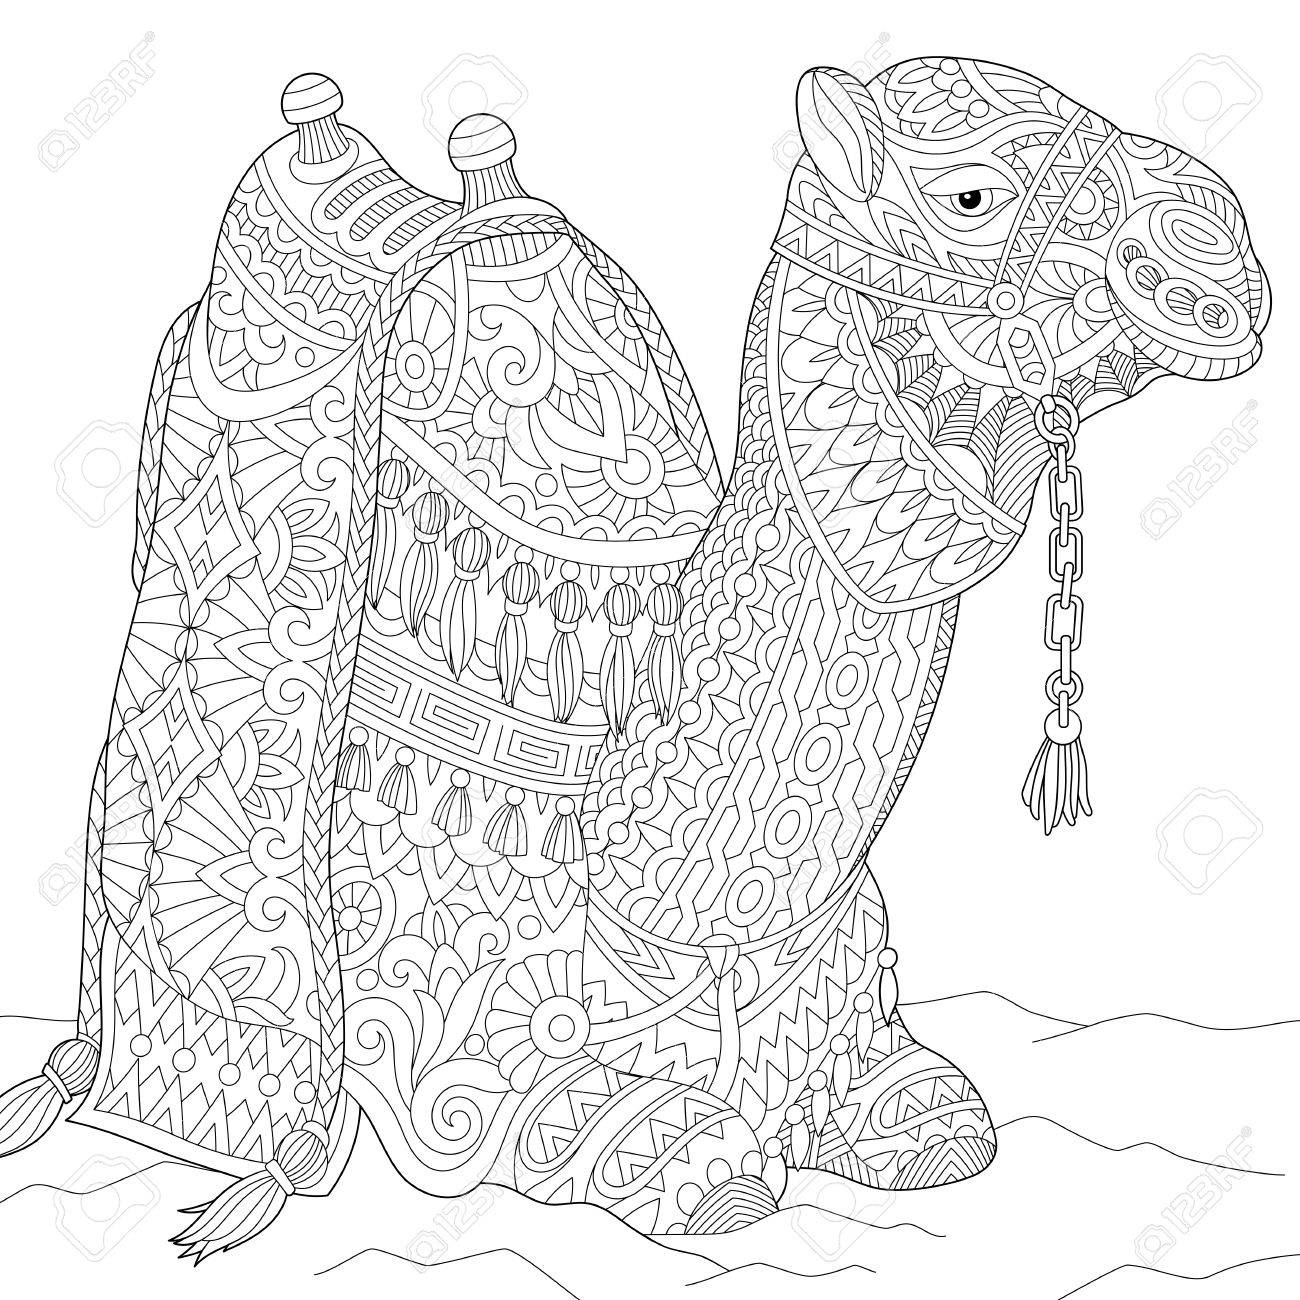 Stylized cartoon camel, isolated on white background. Freehand sketch for adult anti stress coloring book page with doodle and zentangle elements. - 70128106